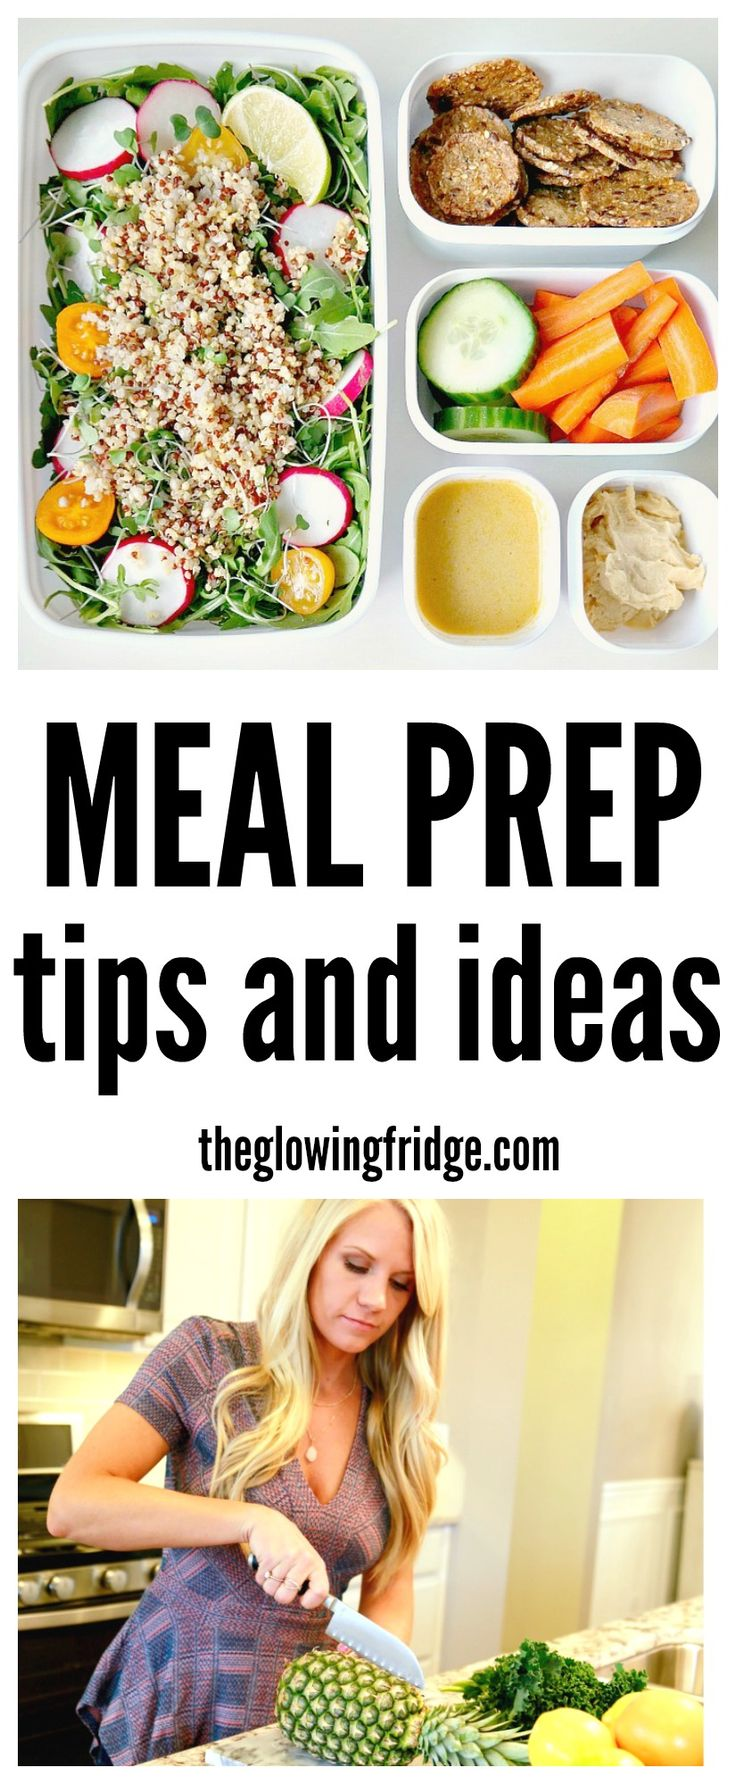 Healthy Meal Prepping Tips & Ideas #vegan #veggielove #protein